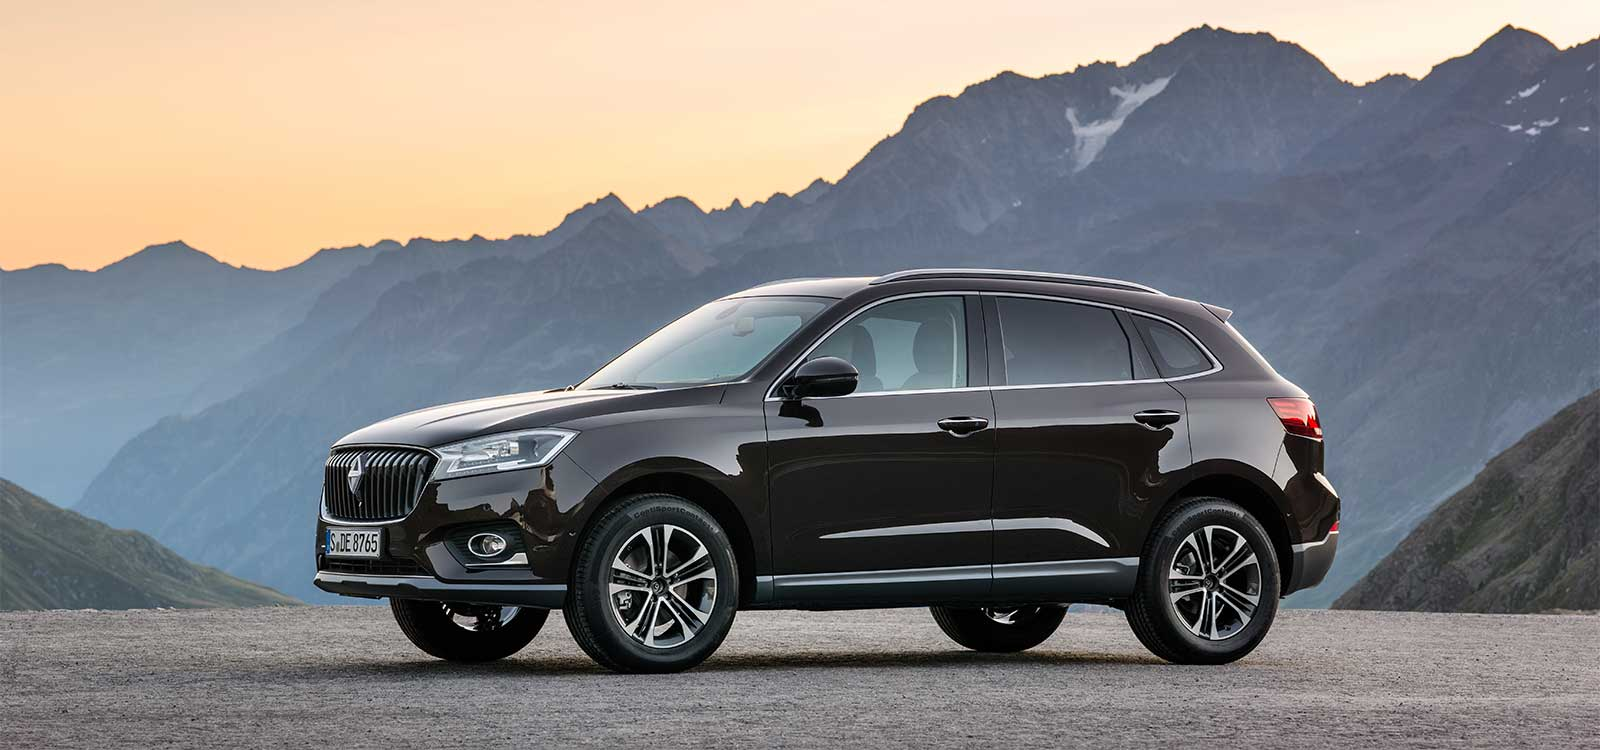 Borgward Bx7 A Combination Between Bmw X3 And Audi Q5